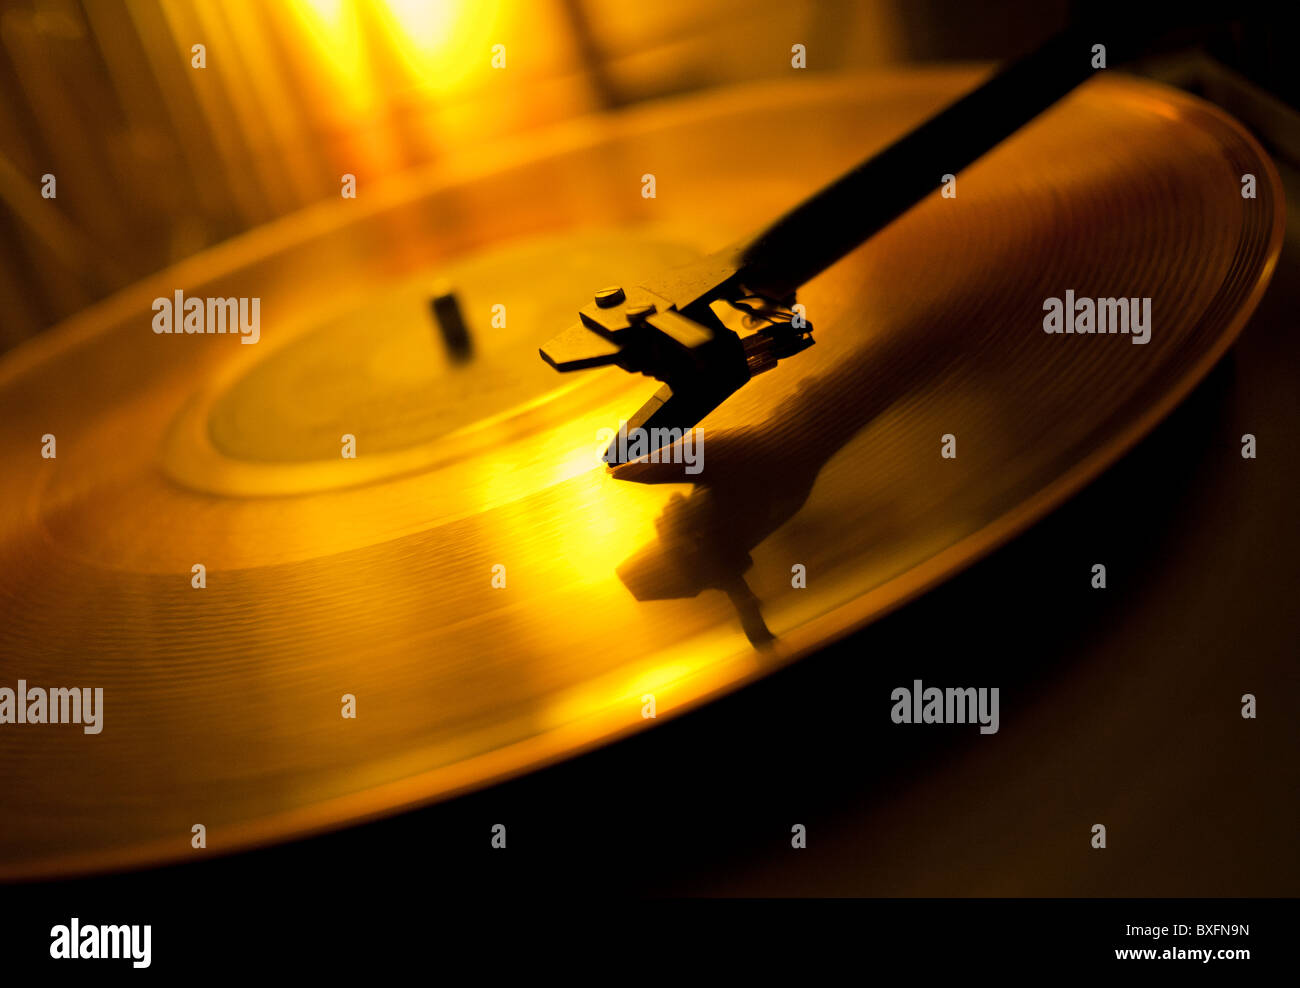 A record playing on a vinyl turntable deck - Stock Image